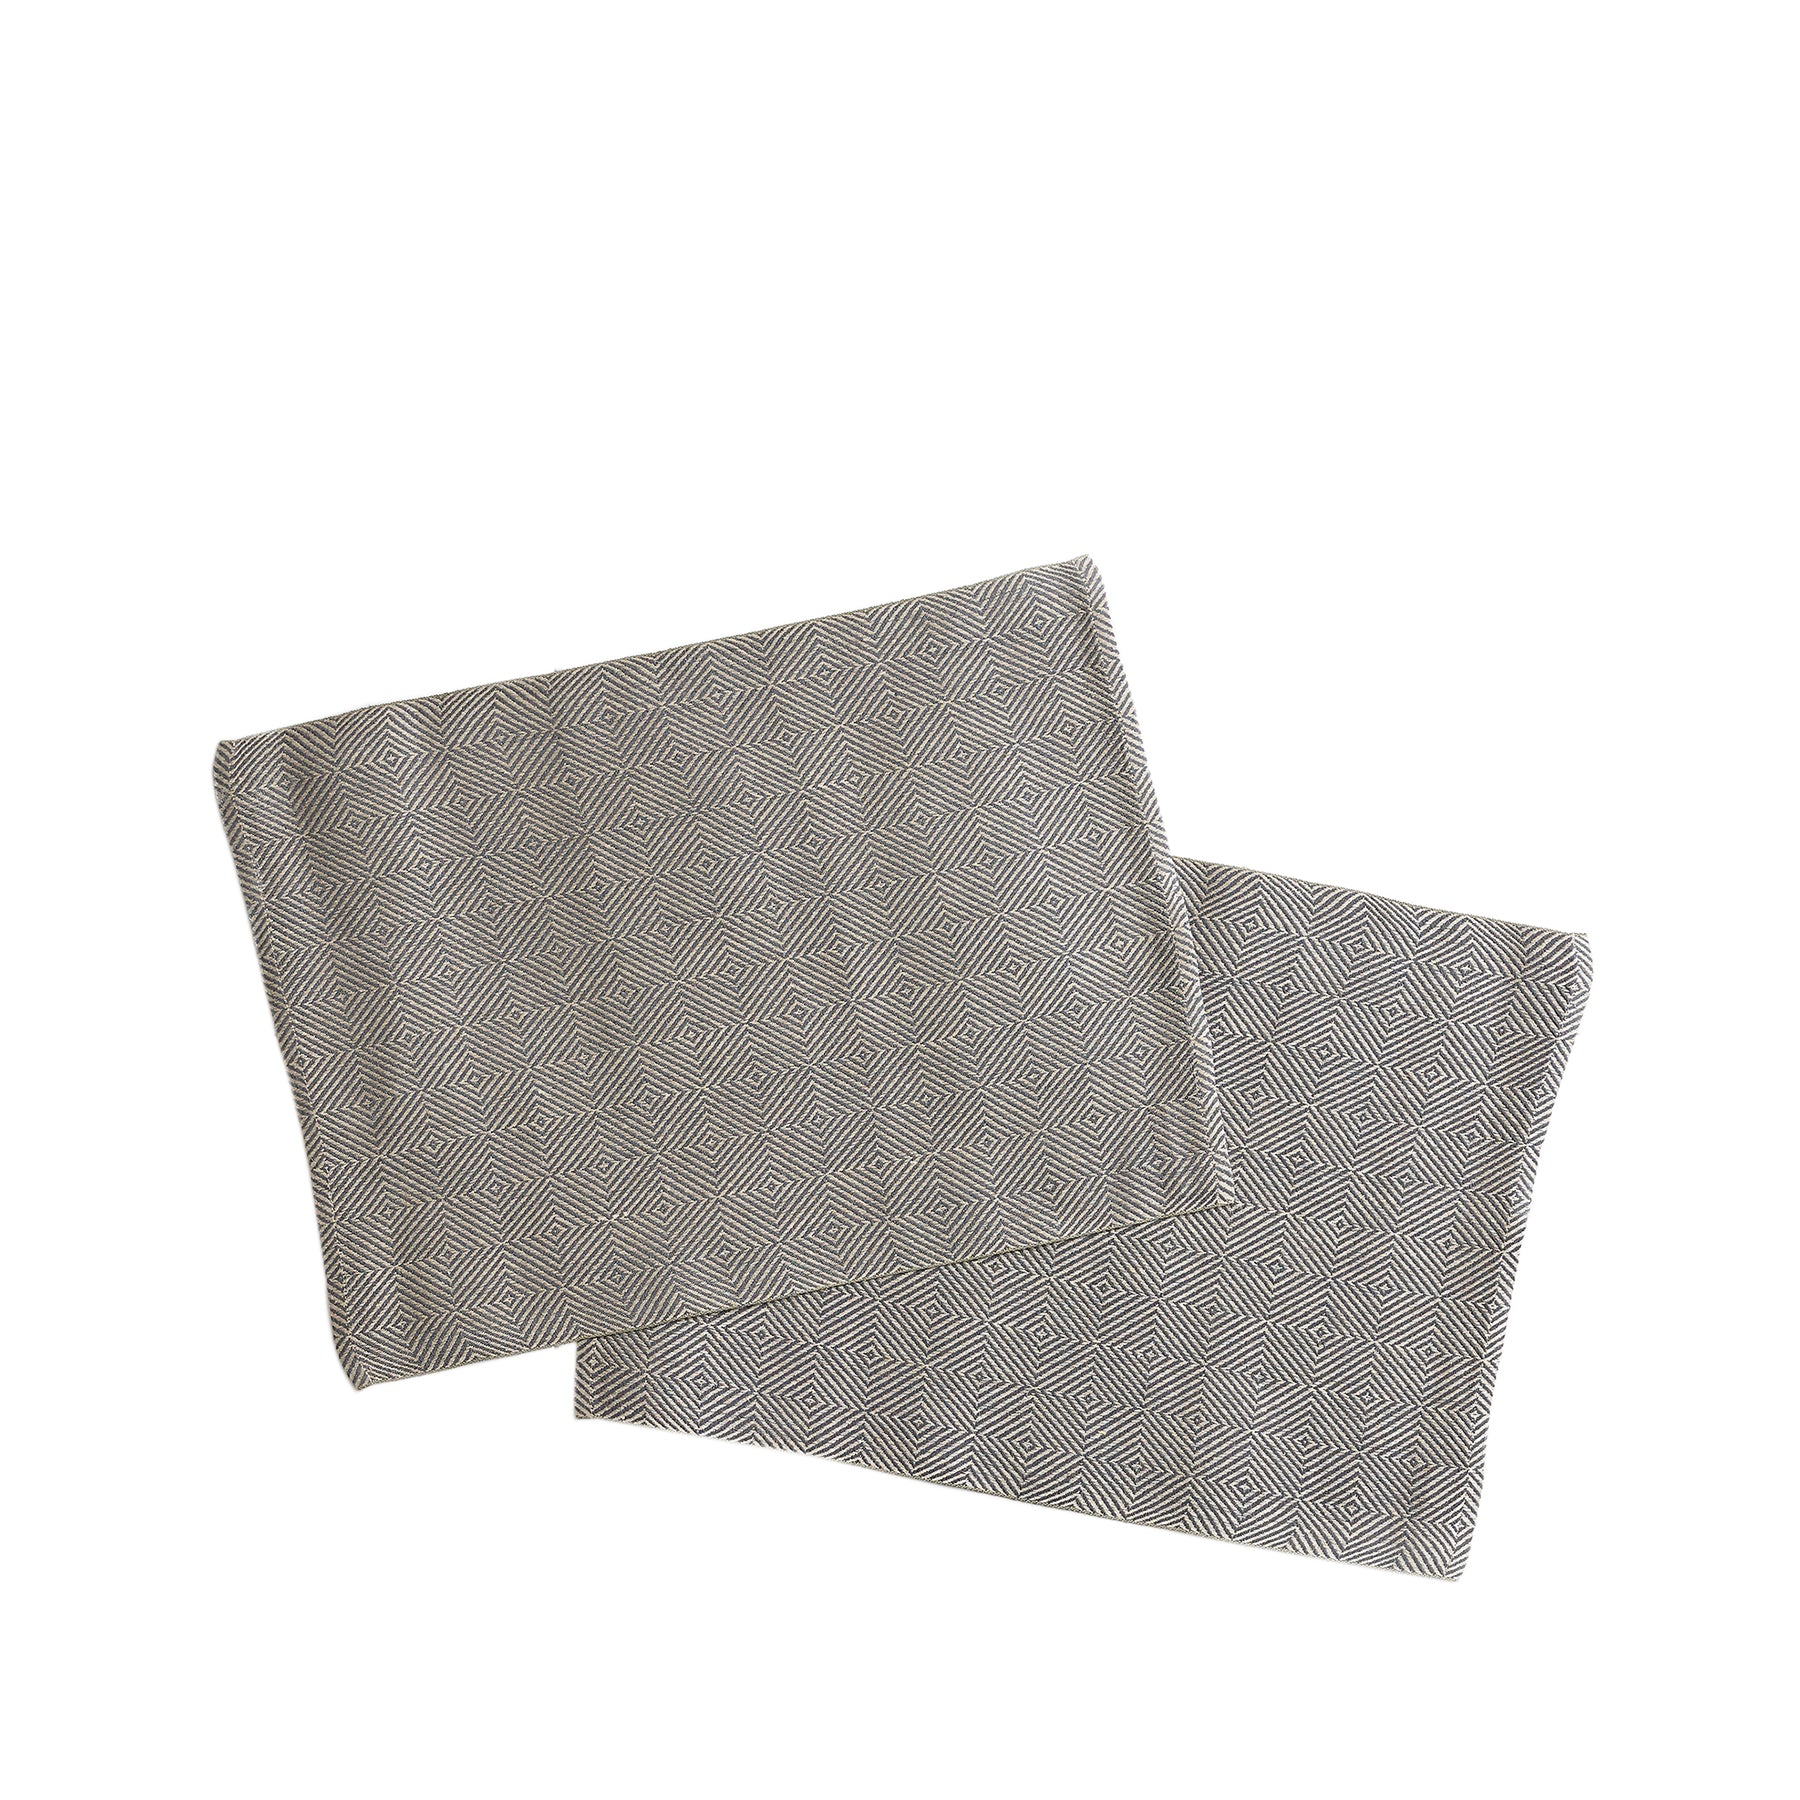 Linen Rutig Strandrag Placemats in Graphite (Set of 2) Zoom Image 1